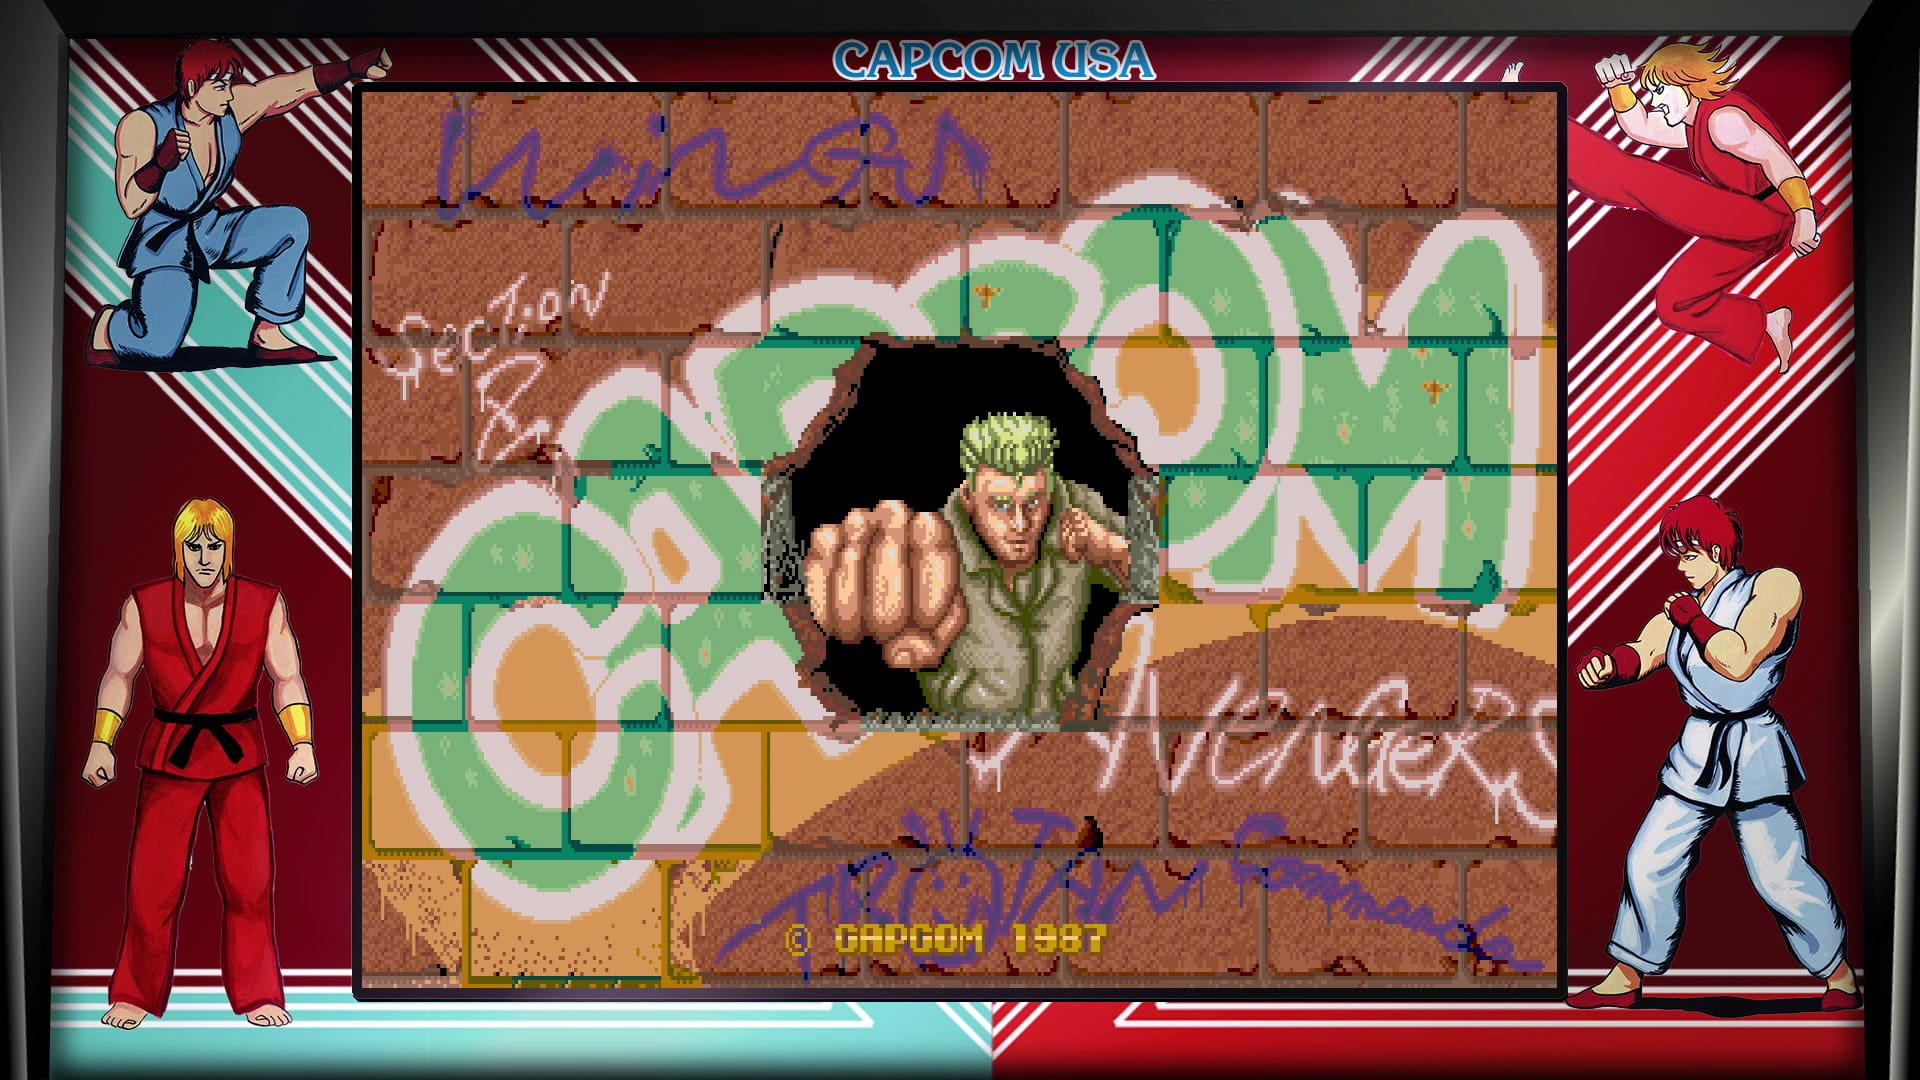 Street Fighter 30th Anniversary Collection images 1 out of 17 image gallery